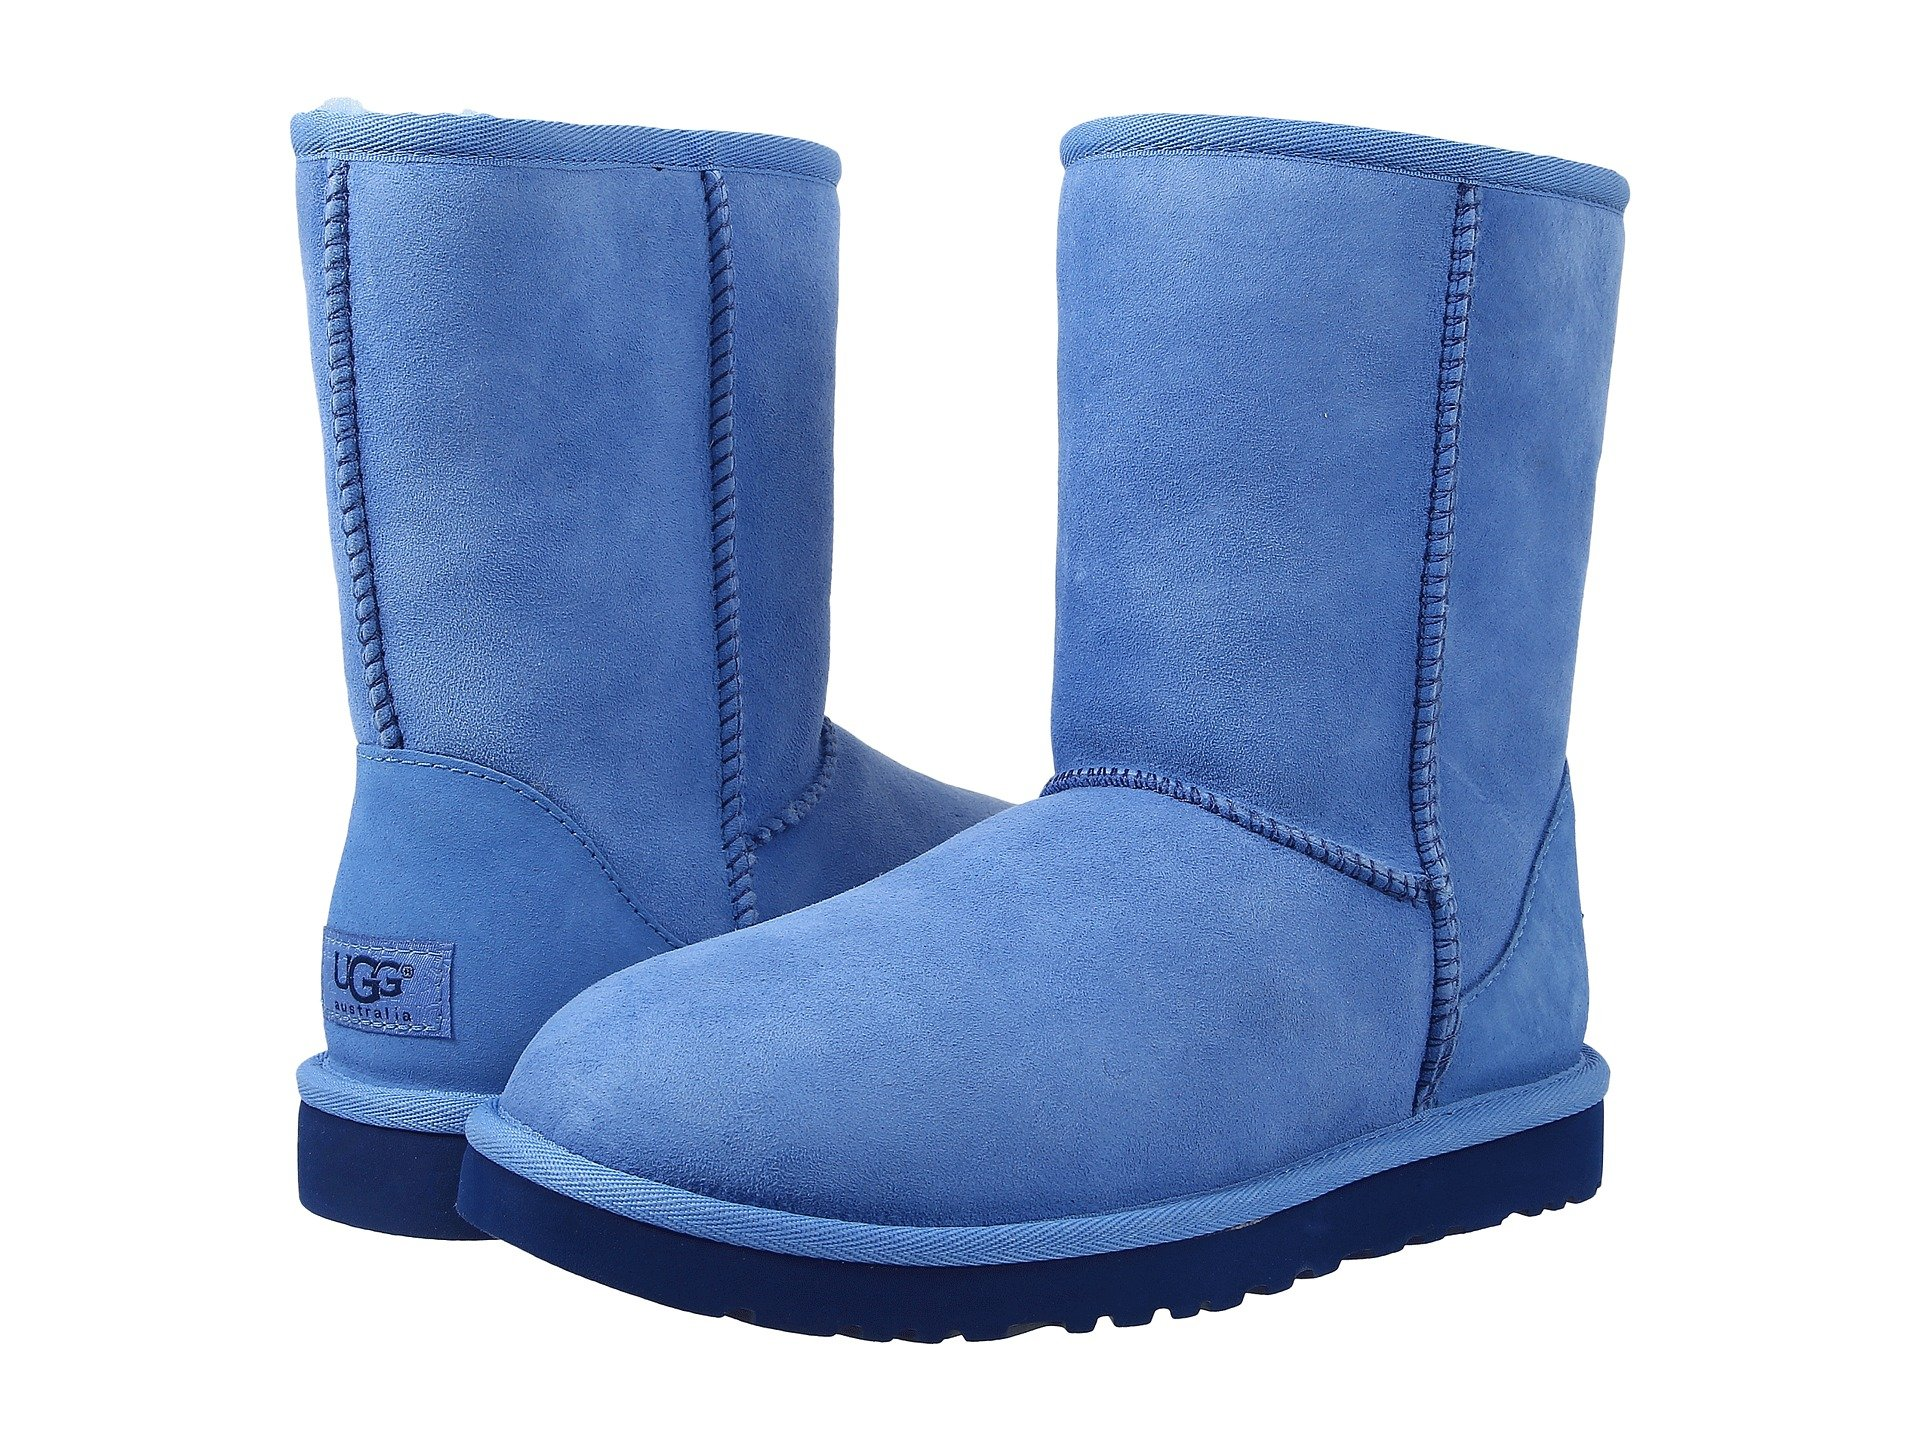 6pm ugg boots